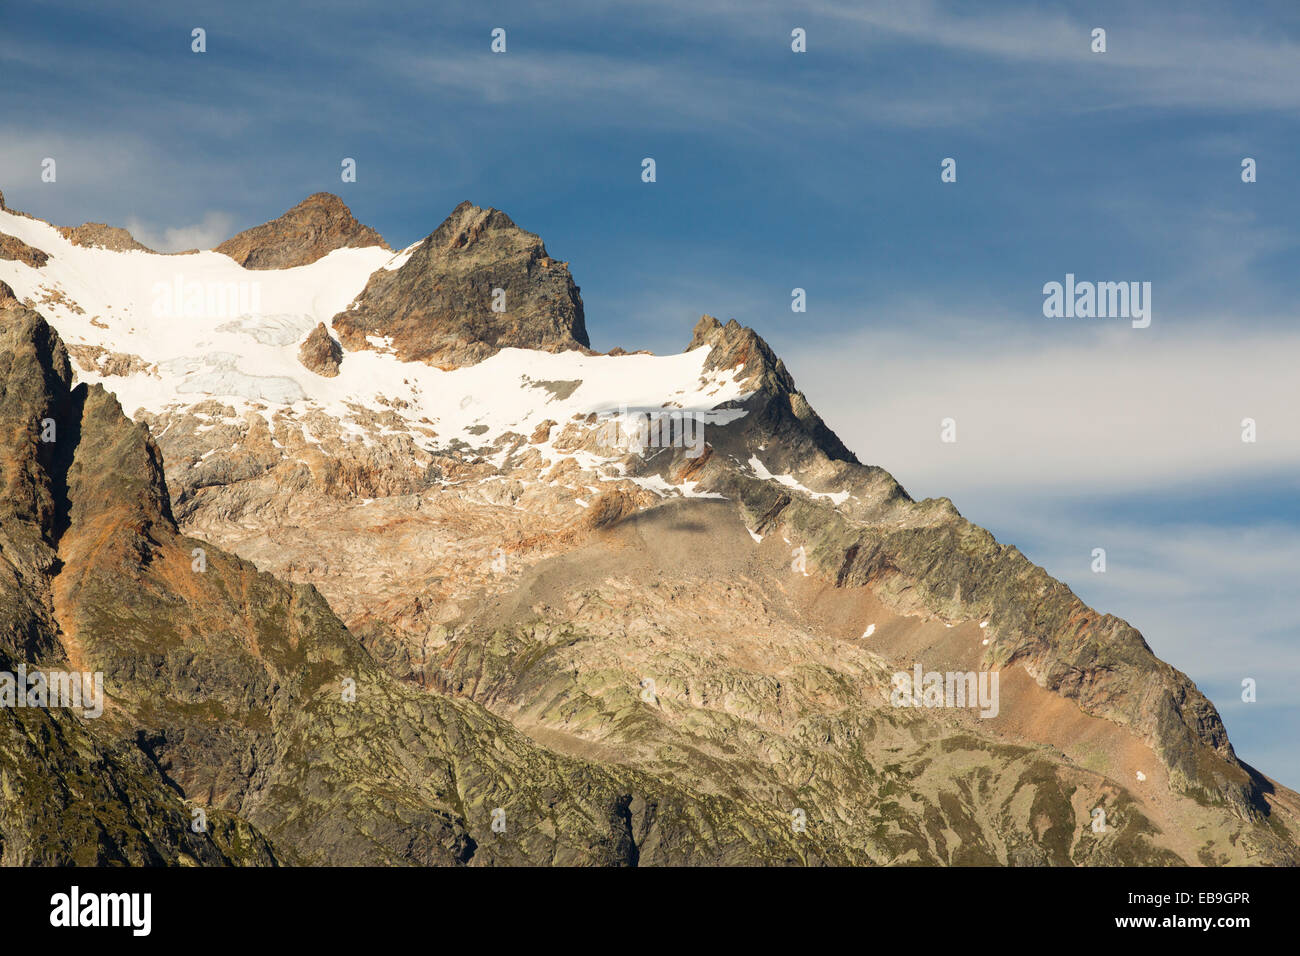 Looking across to the Aiguille de Triolet in the Mont Blanc range, Italy. - Stock Image